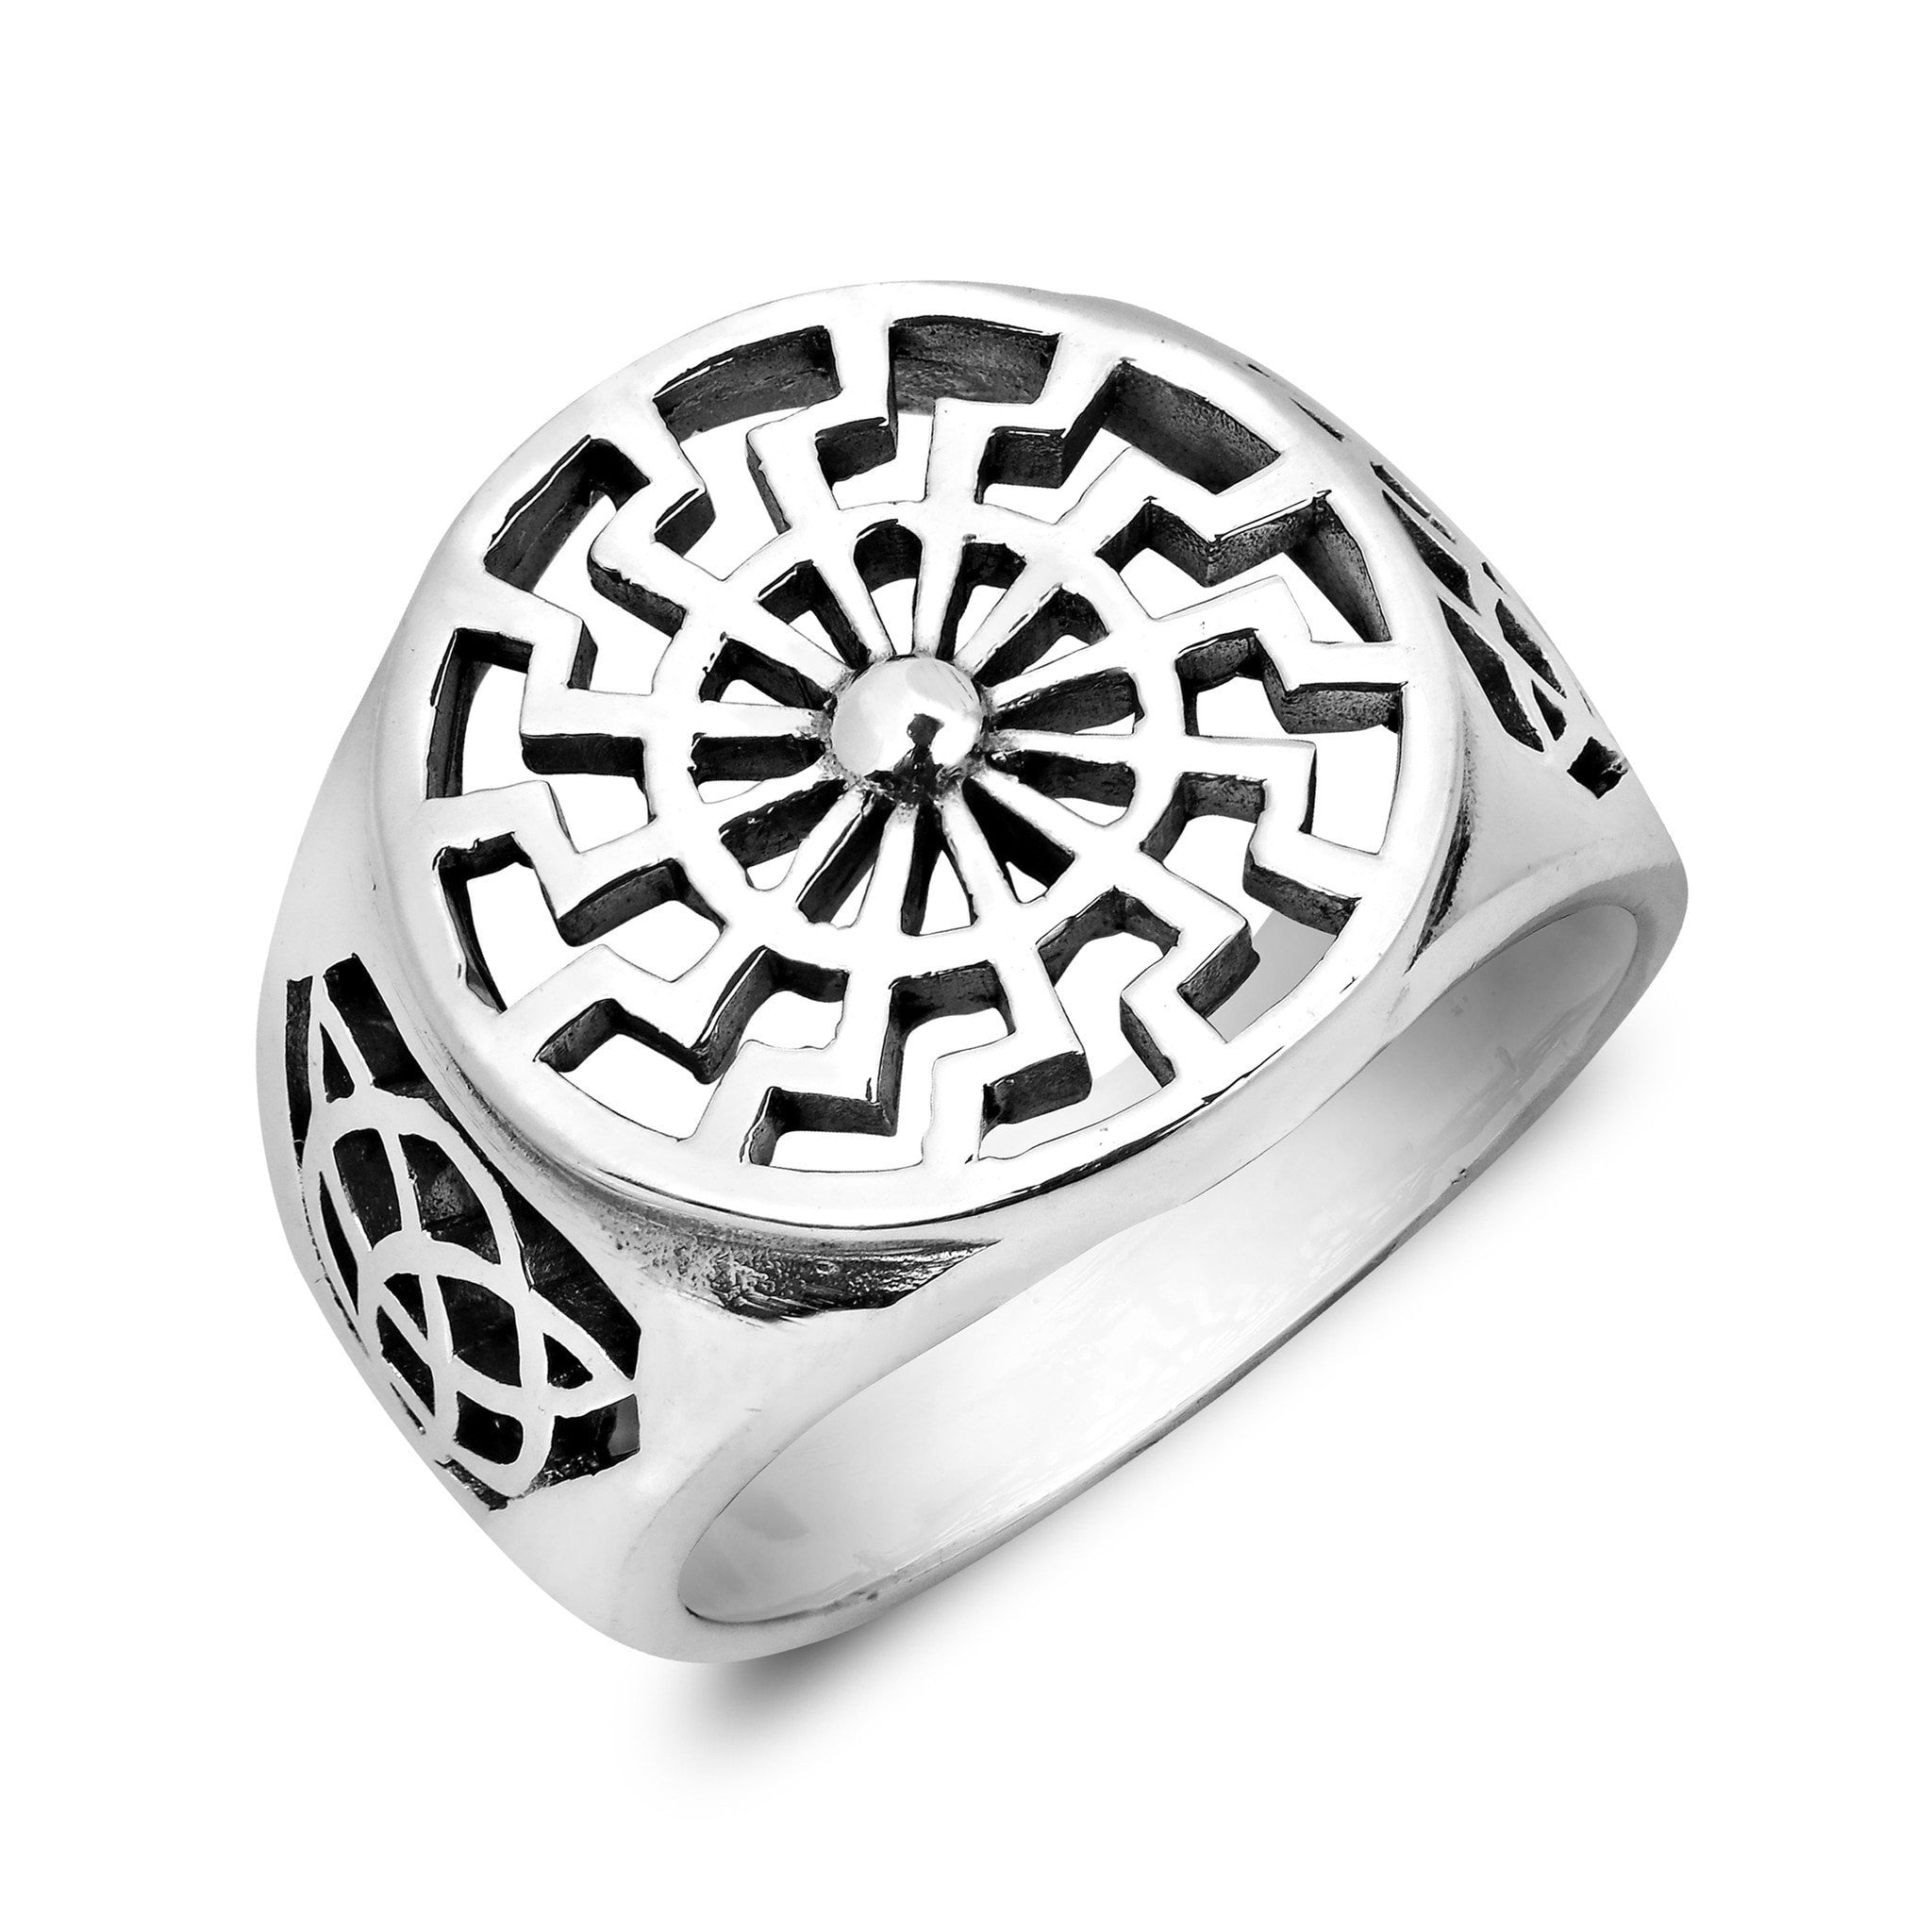 knot celtic sonne wheel schwarze black silver german sonnenrad ring products diamond sterling sun